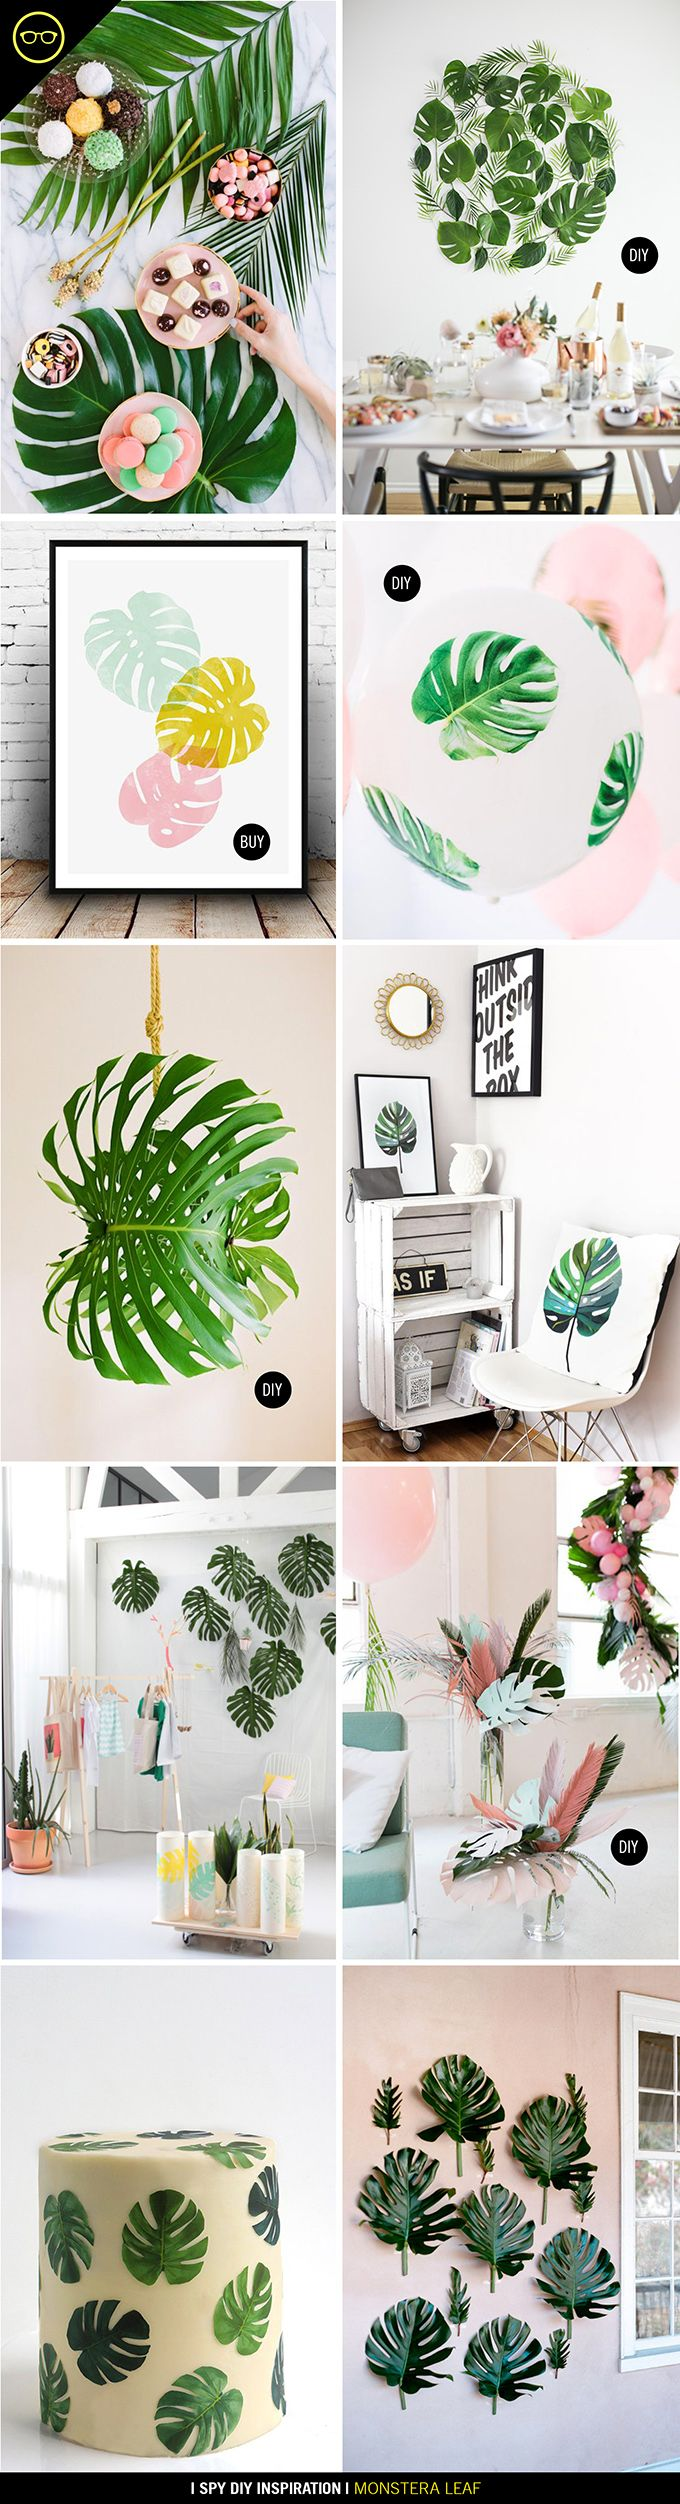 DIY INSPIRATION | Monstera leaves - love these big, beautiful leaves for spring!